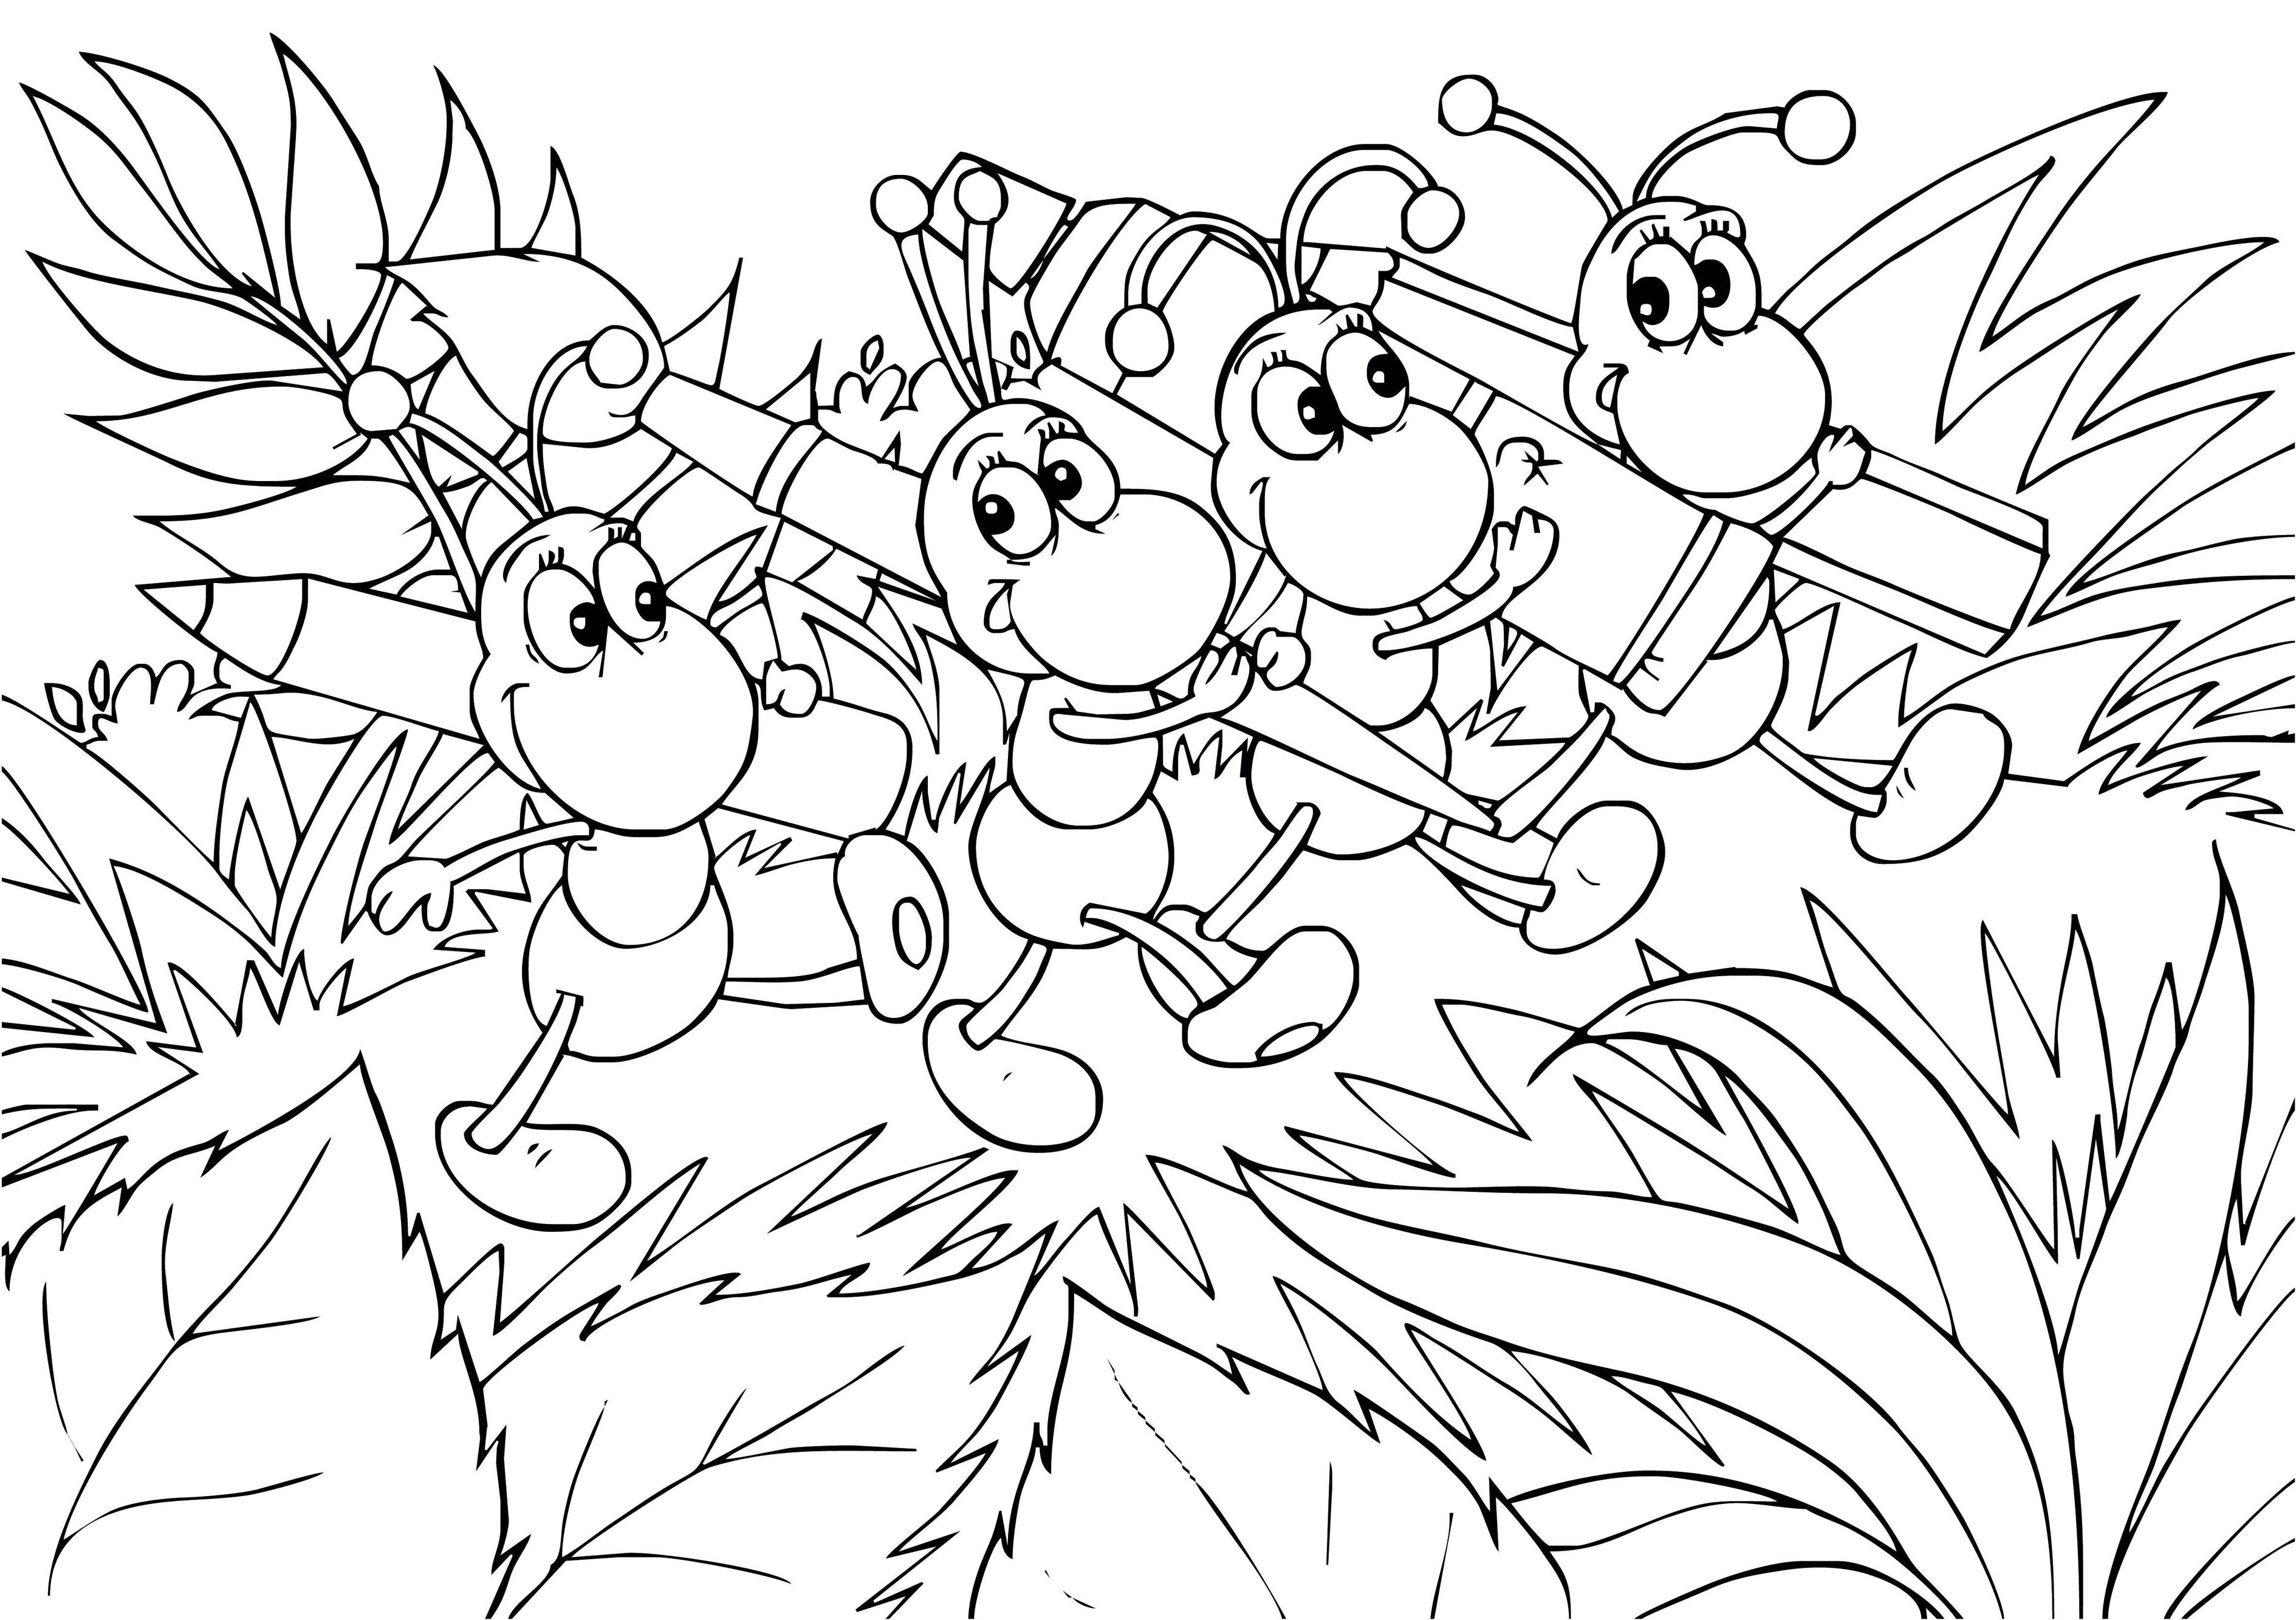 ant picture to color free pictures of ants for kids download free clip art color picture to ant